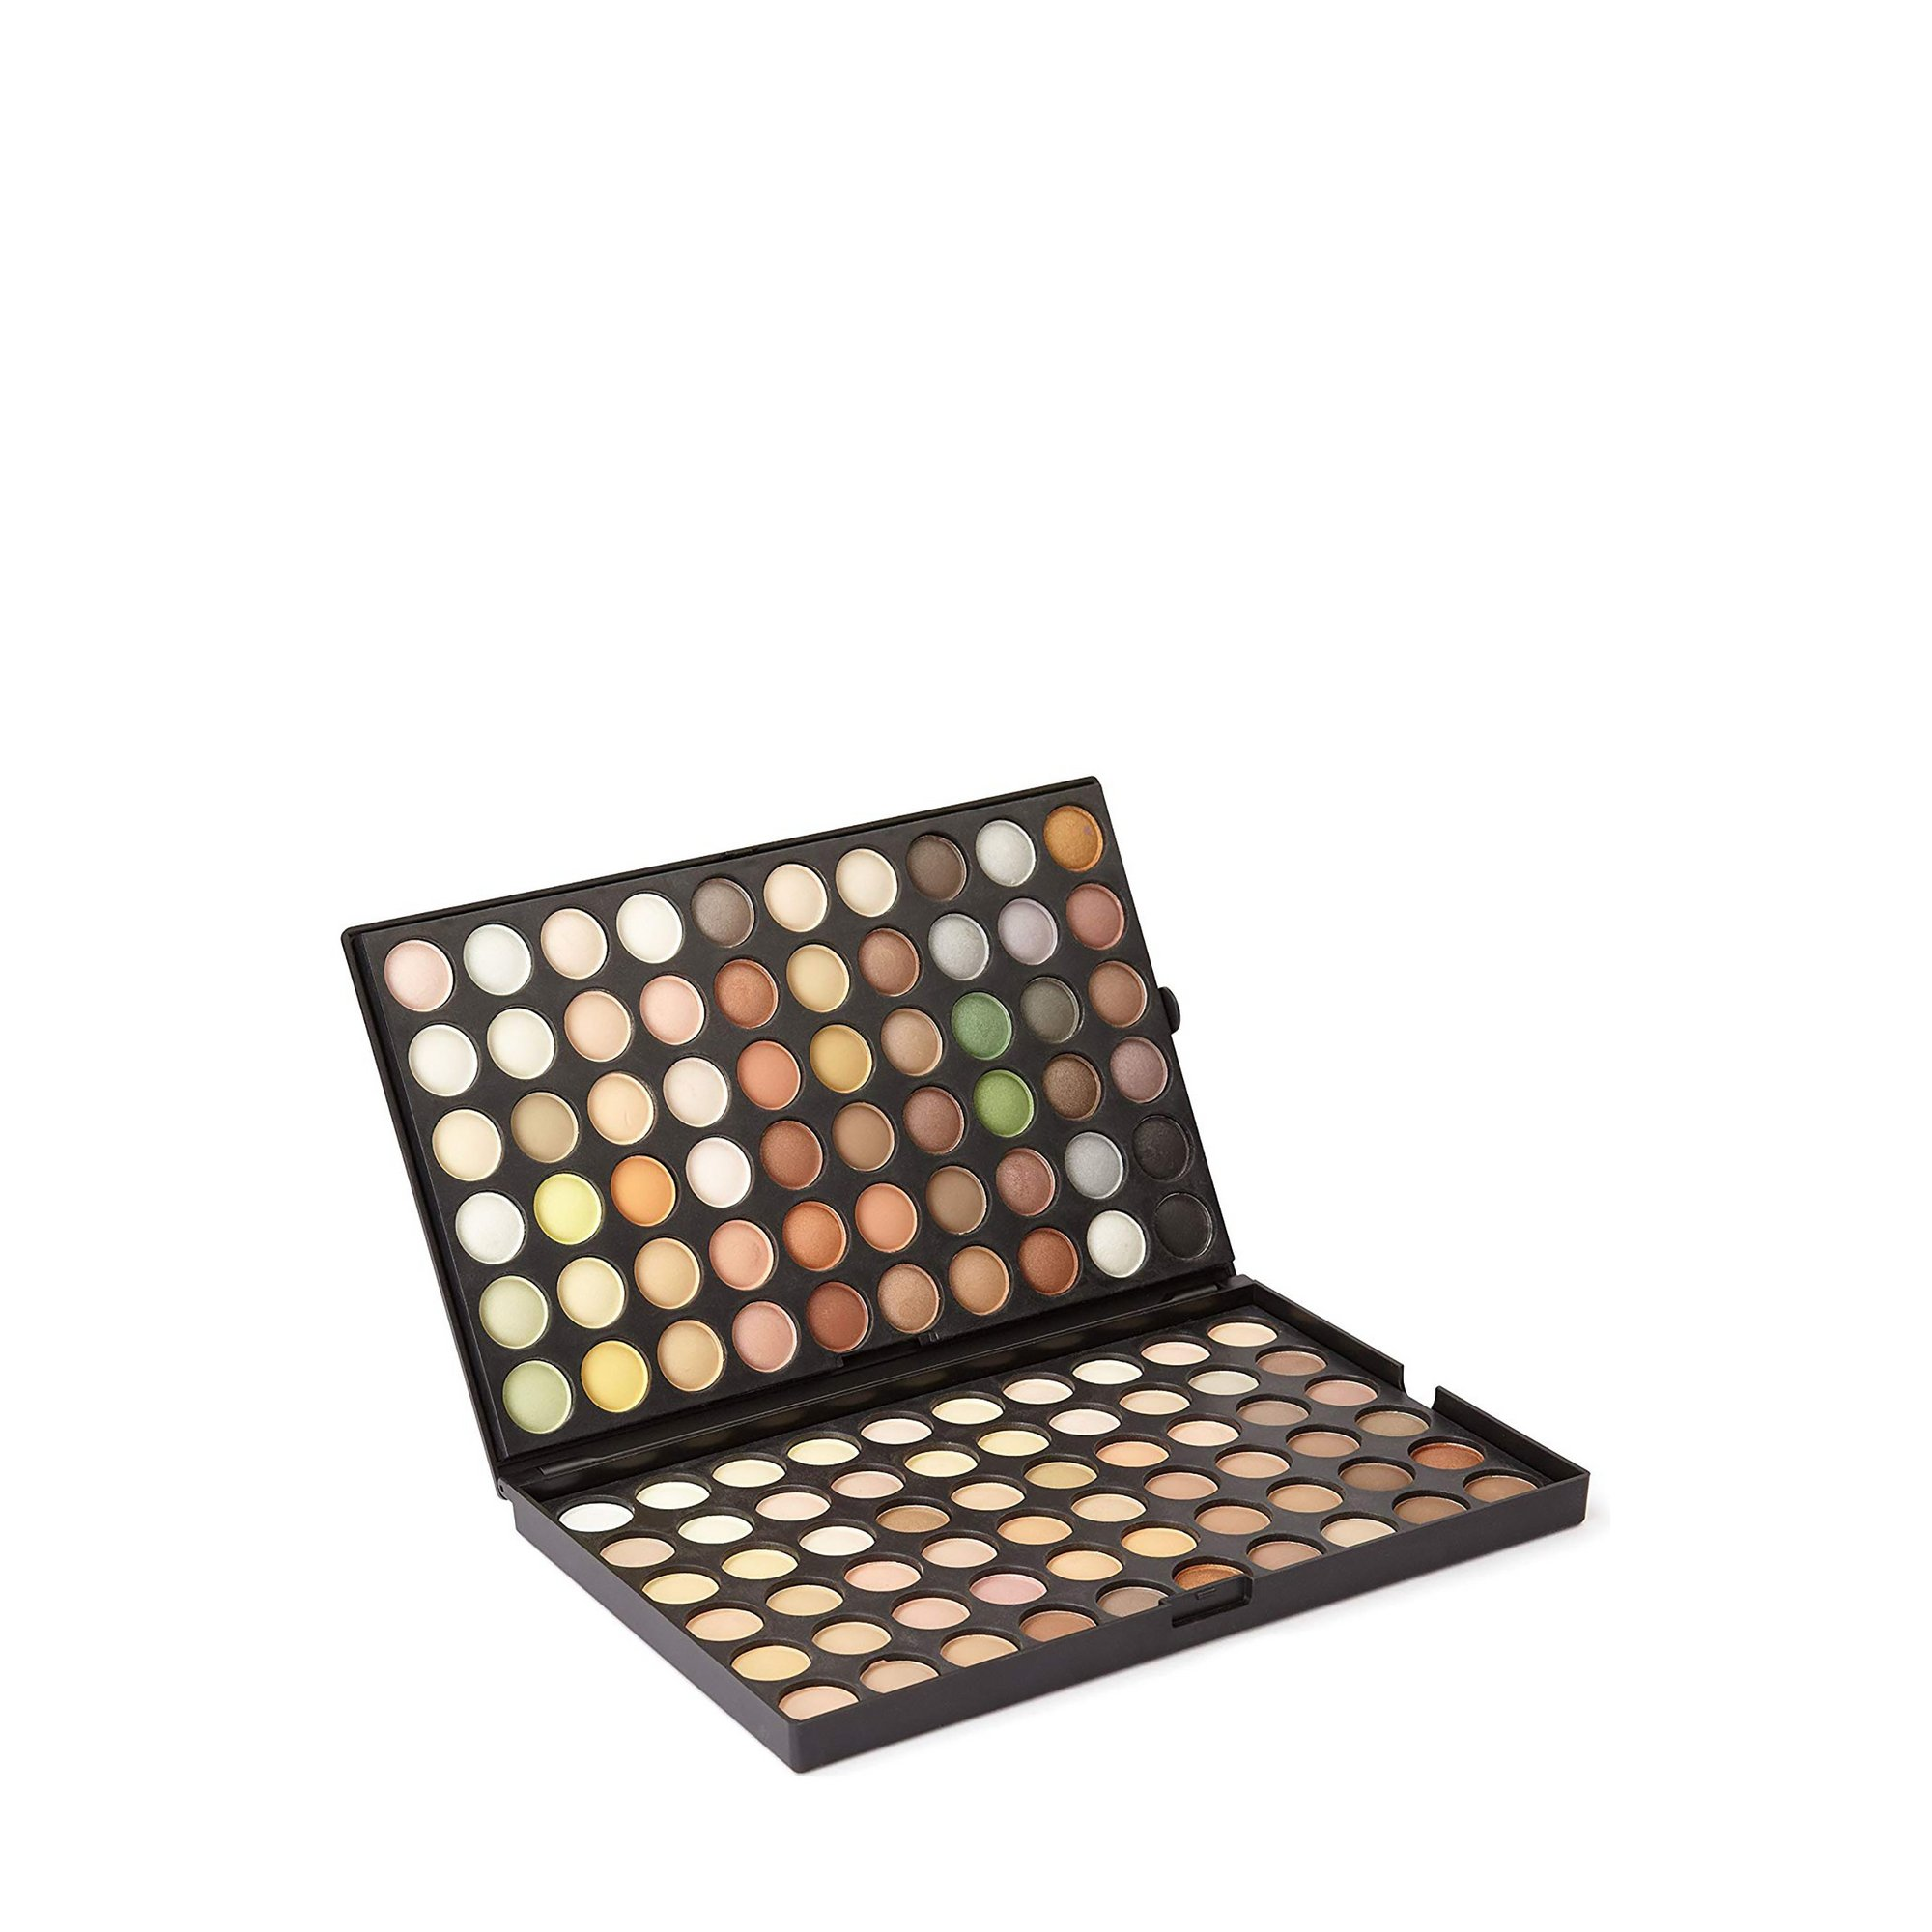 Image of LaRoc 120 Colours Natural Tones Eye Shadow Palette